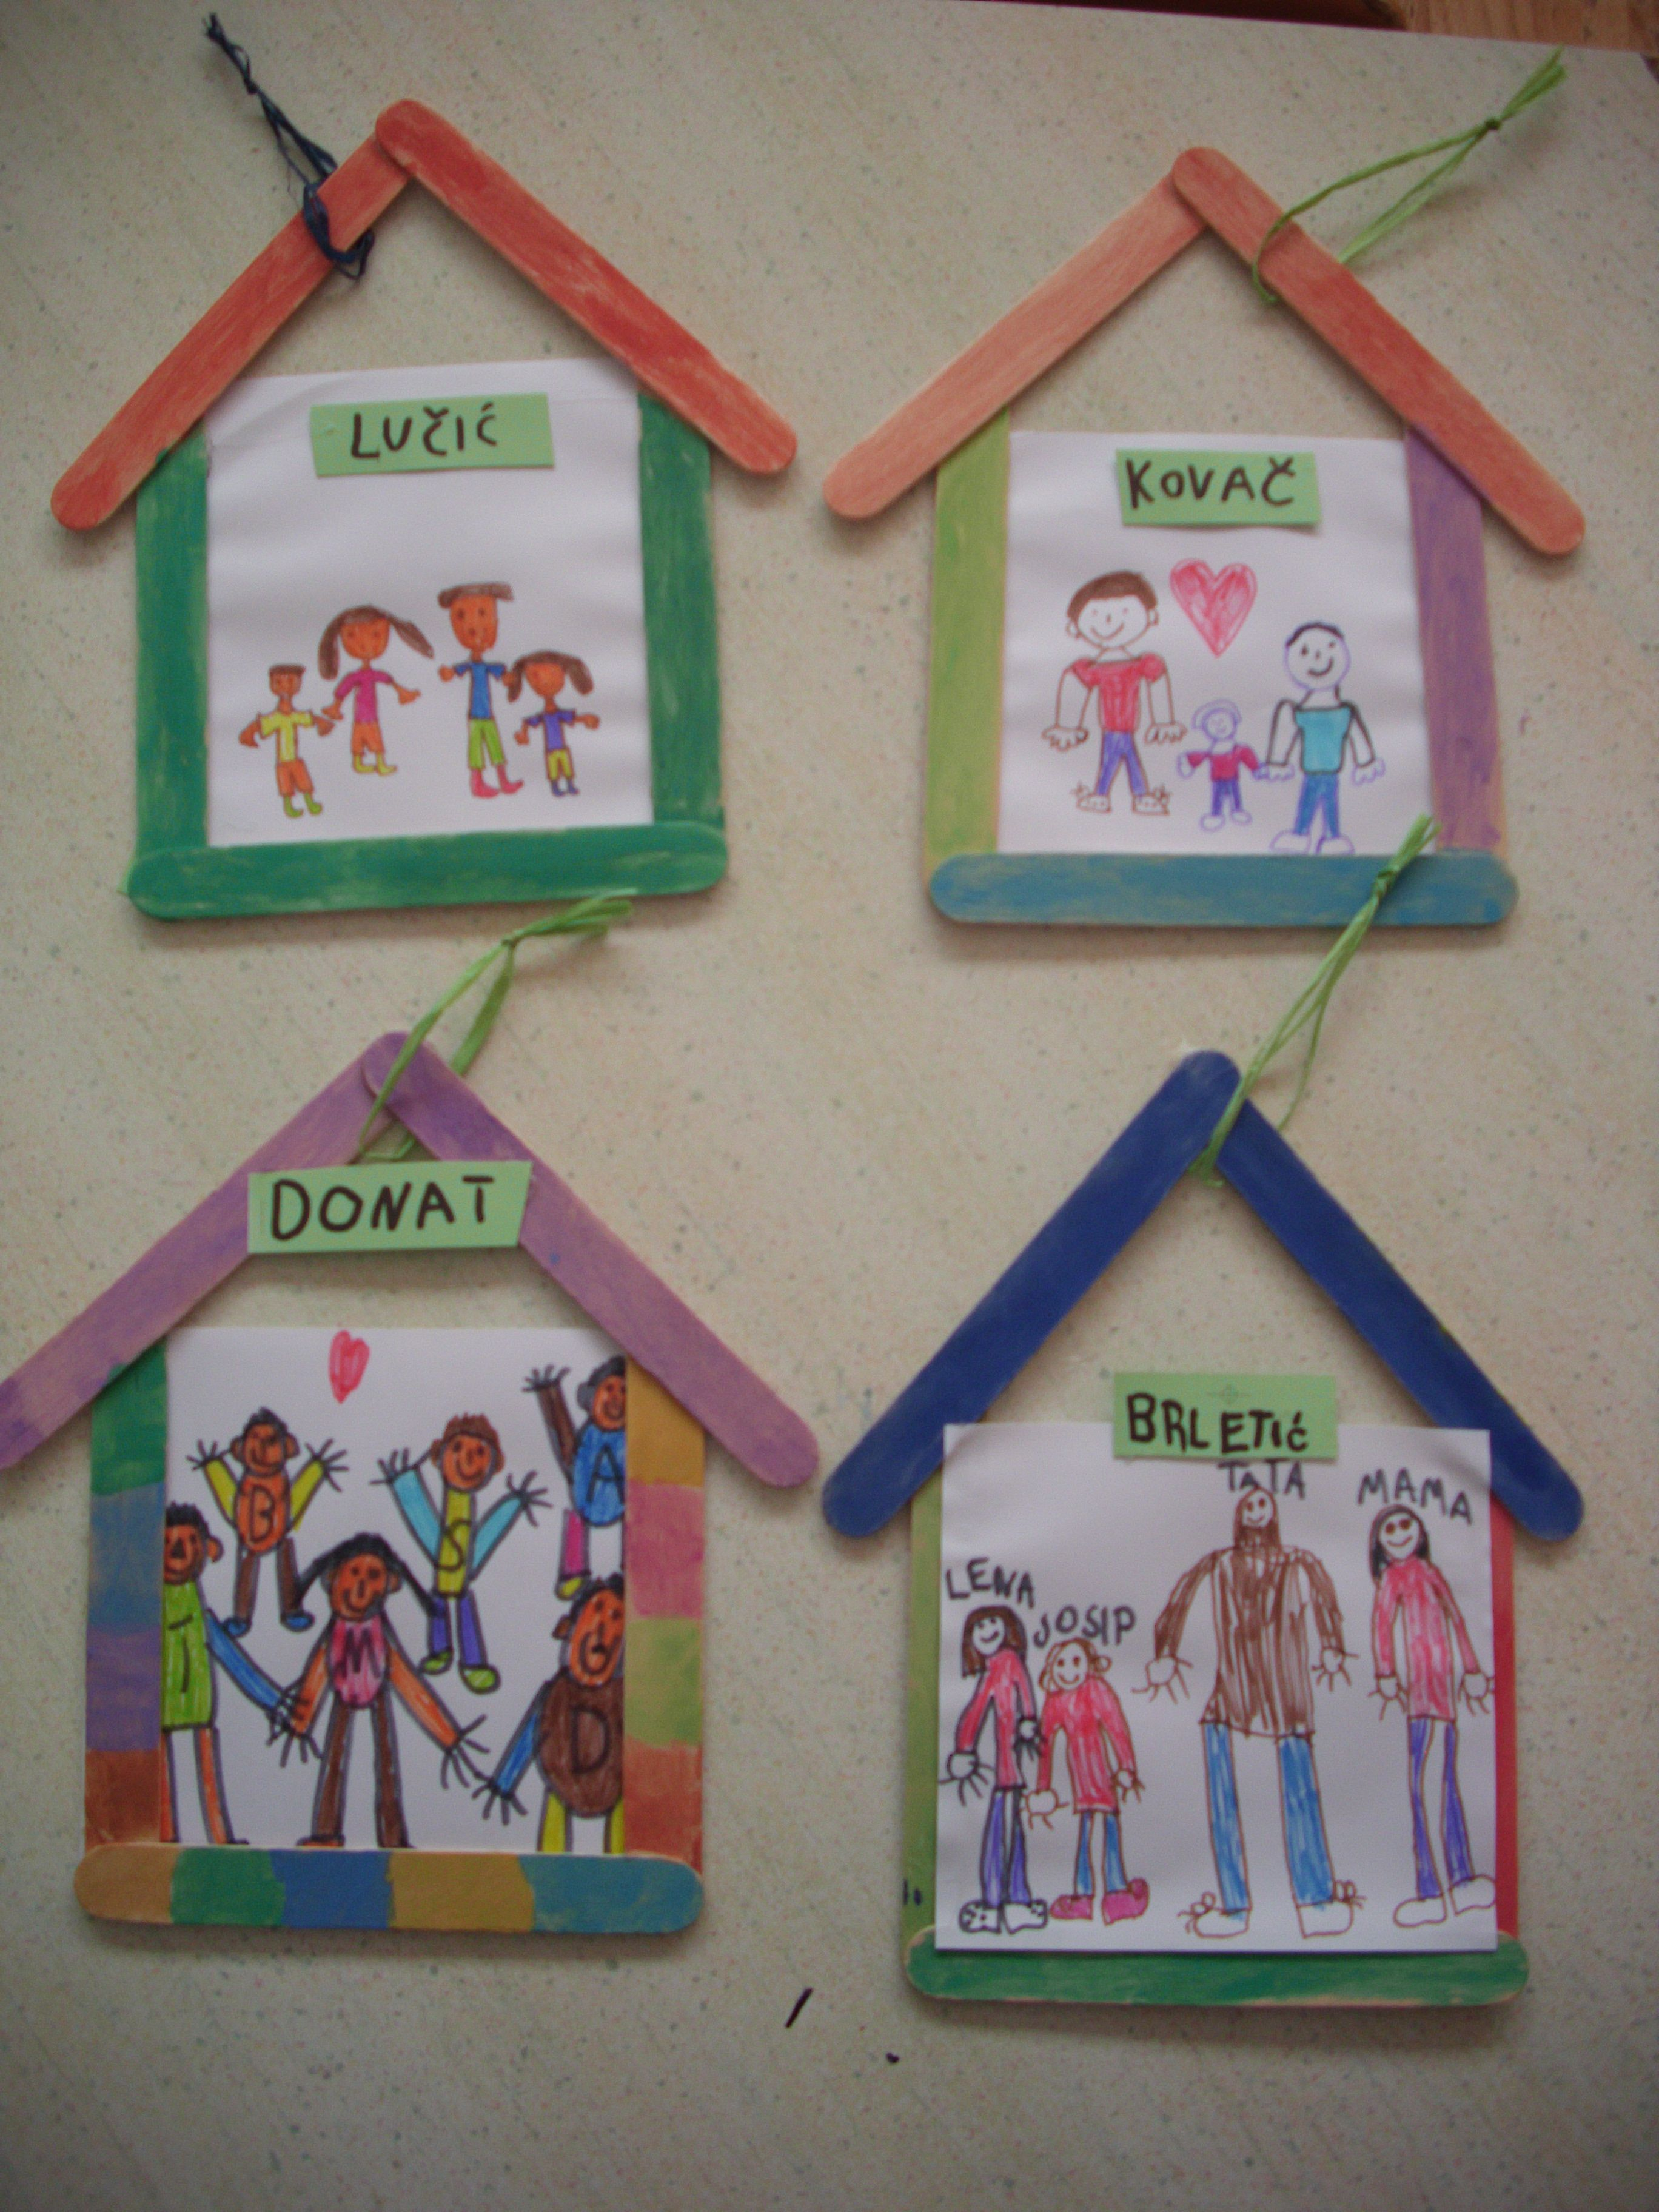 House art projects for preschoolers